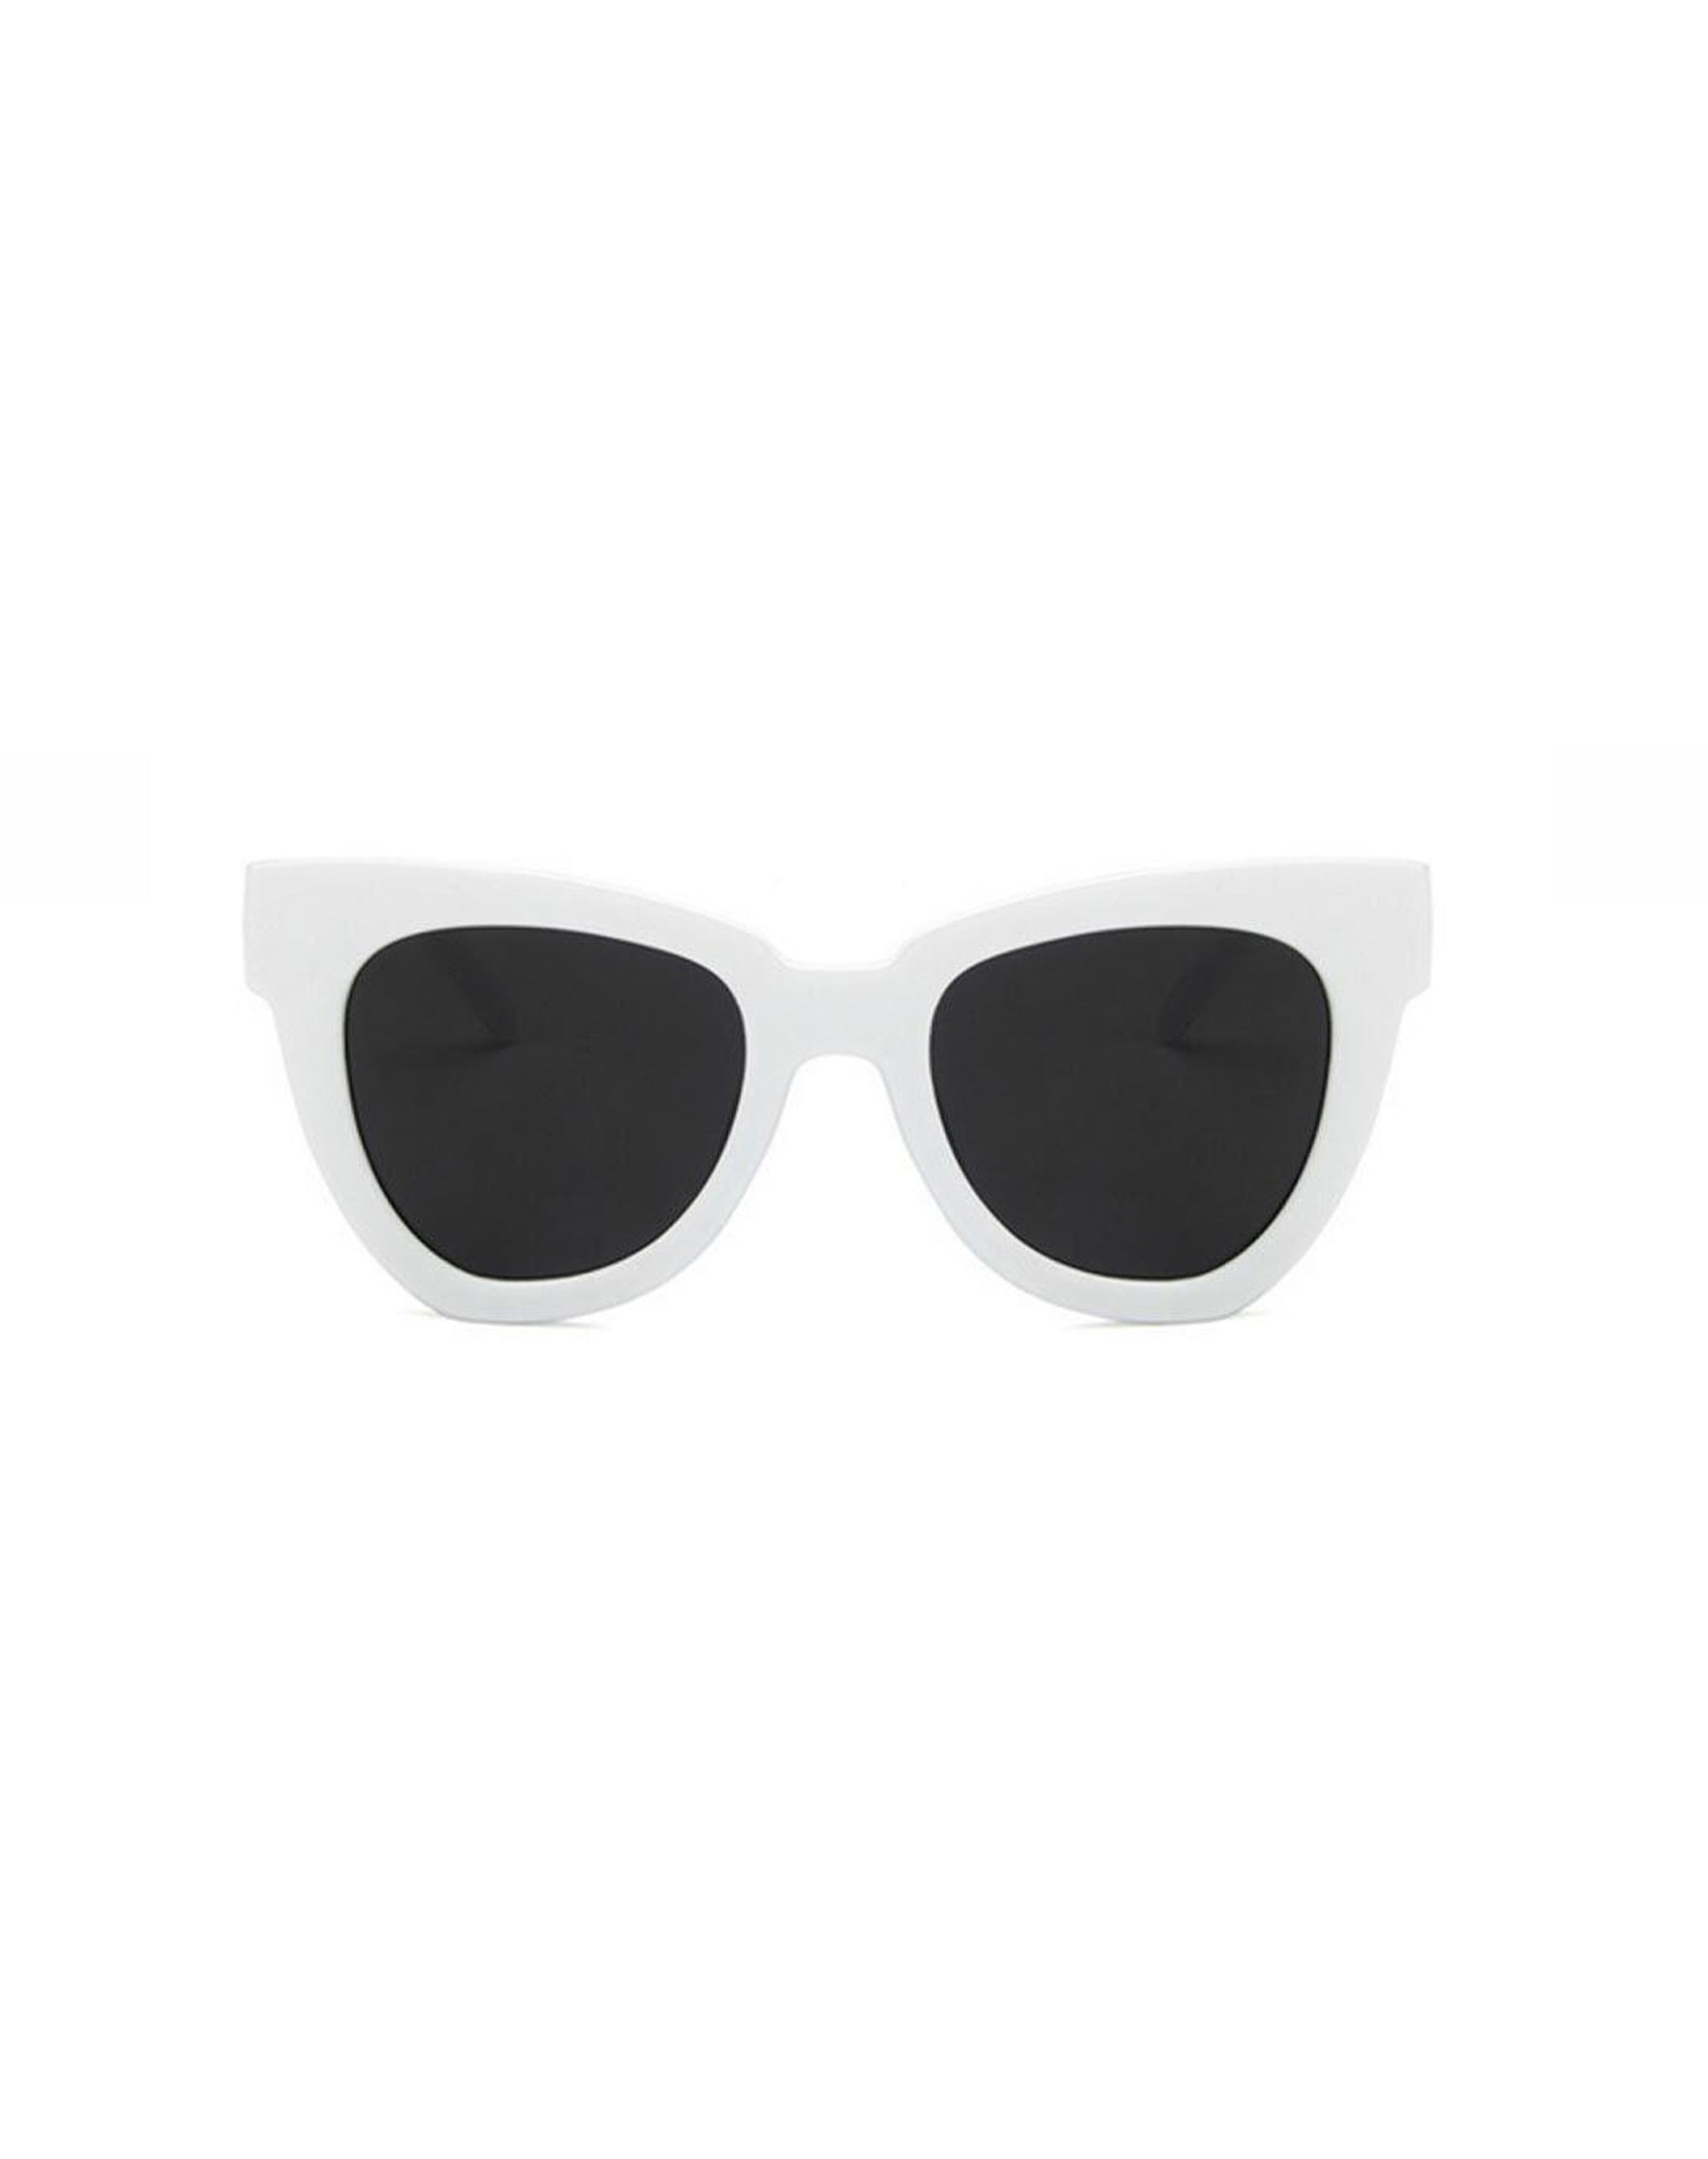 Photo of the Hayley sunglasses in white by Shady Lady Eyewear.